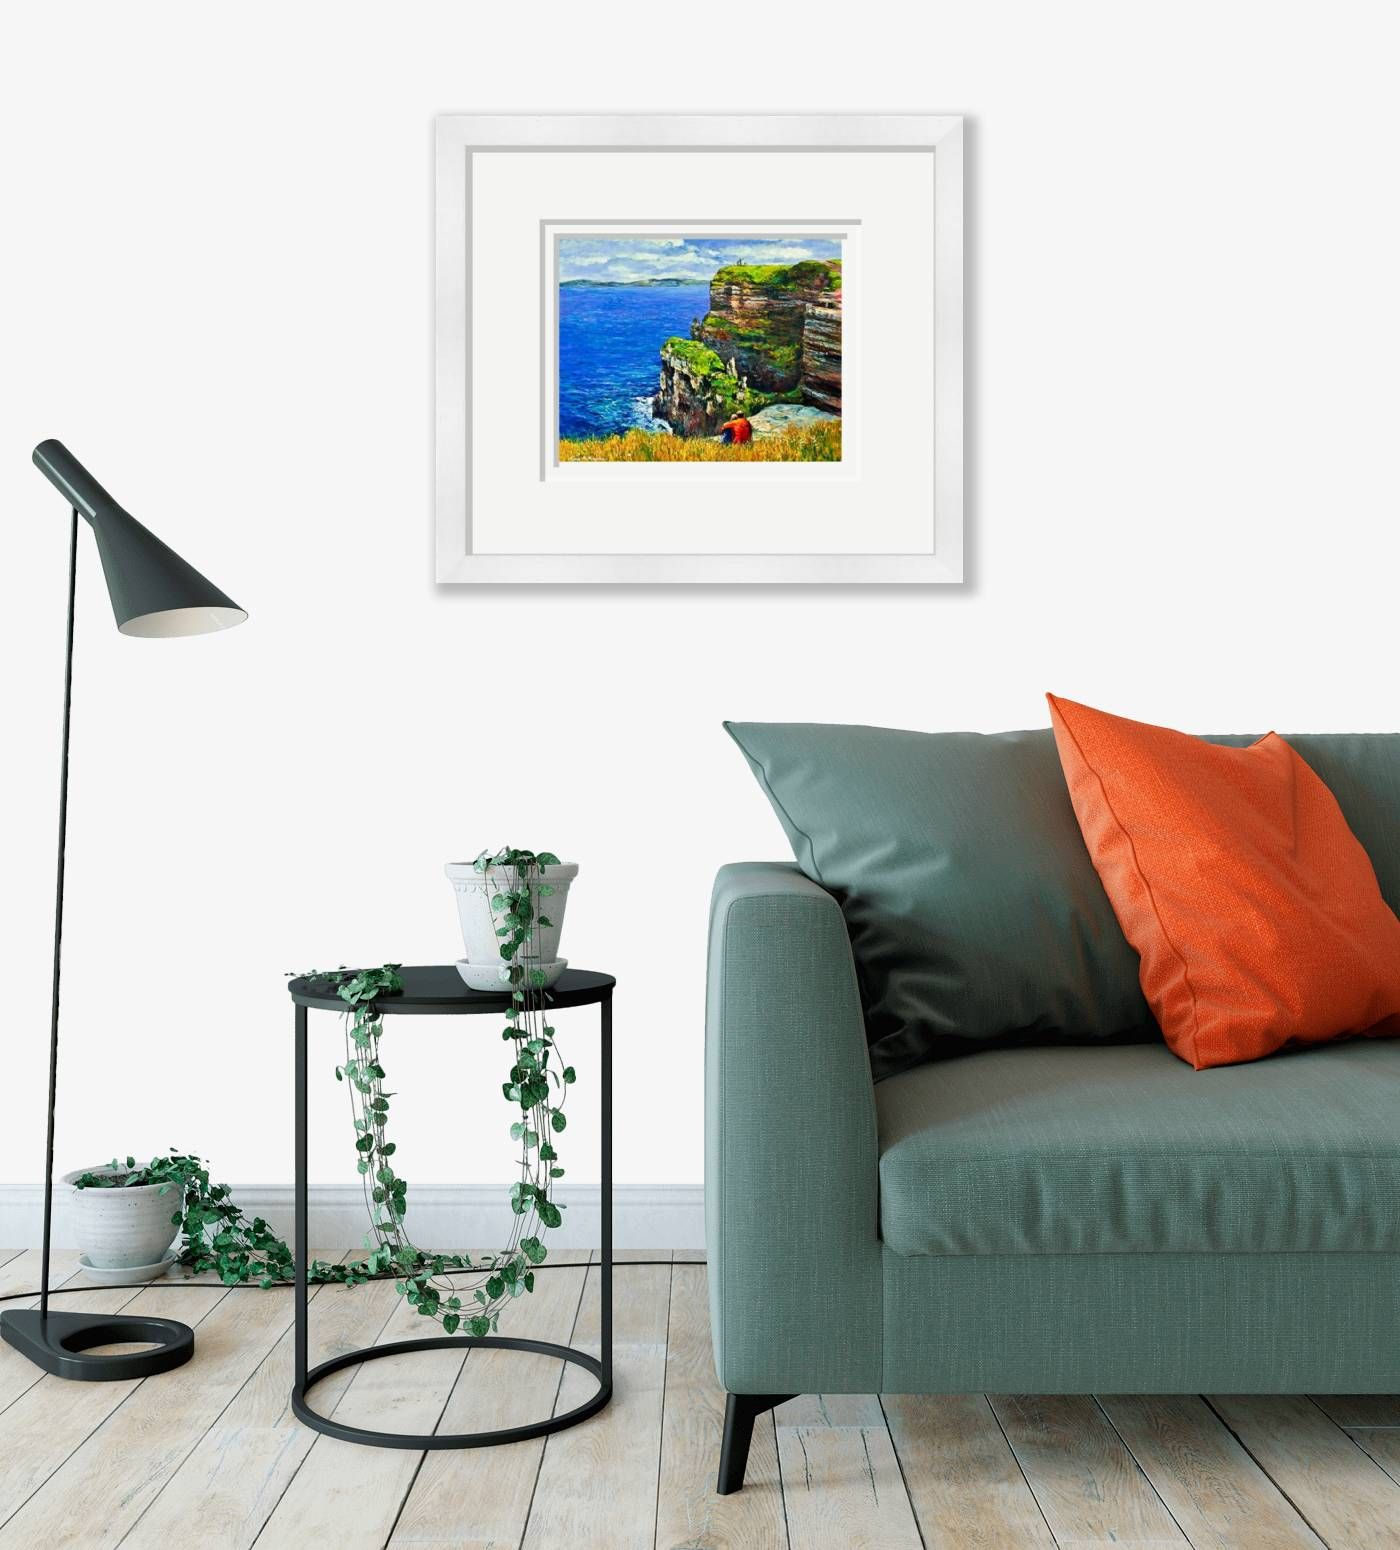 Large framed - Cliffs of Moher - 529 by Chris McMorrow